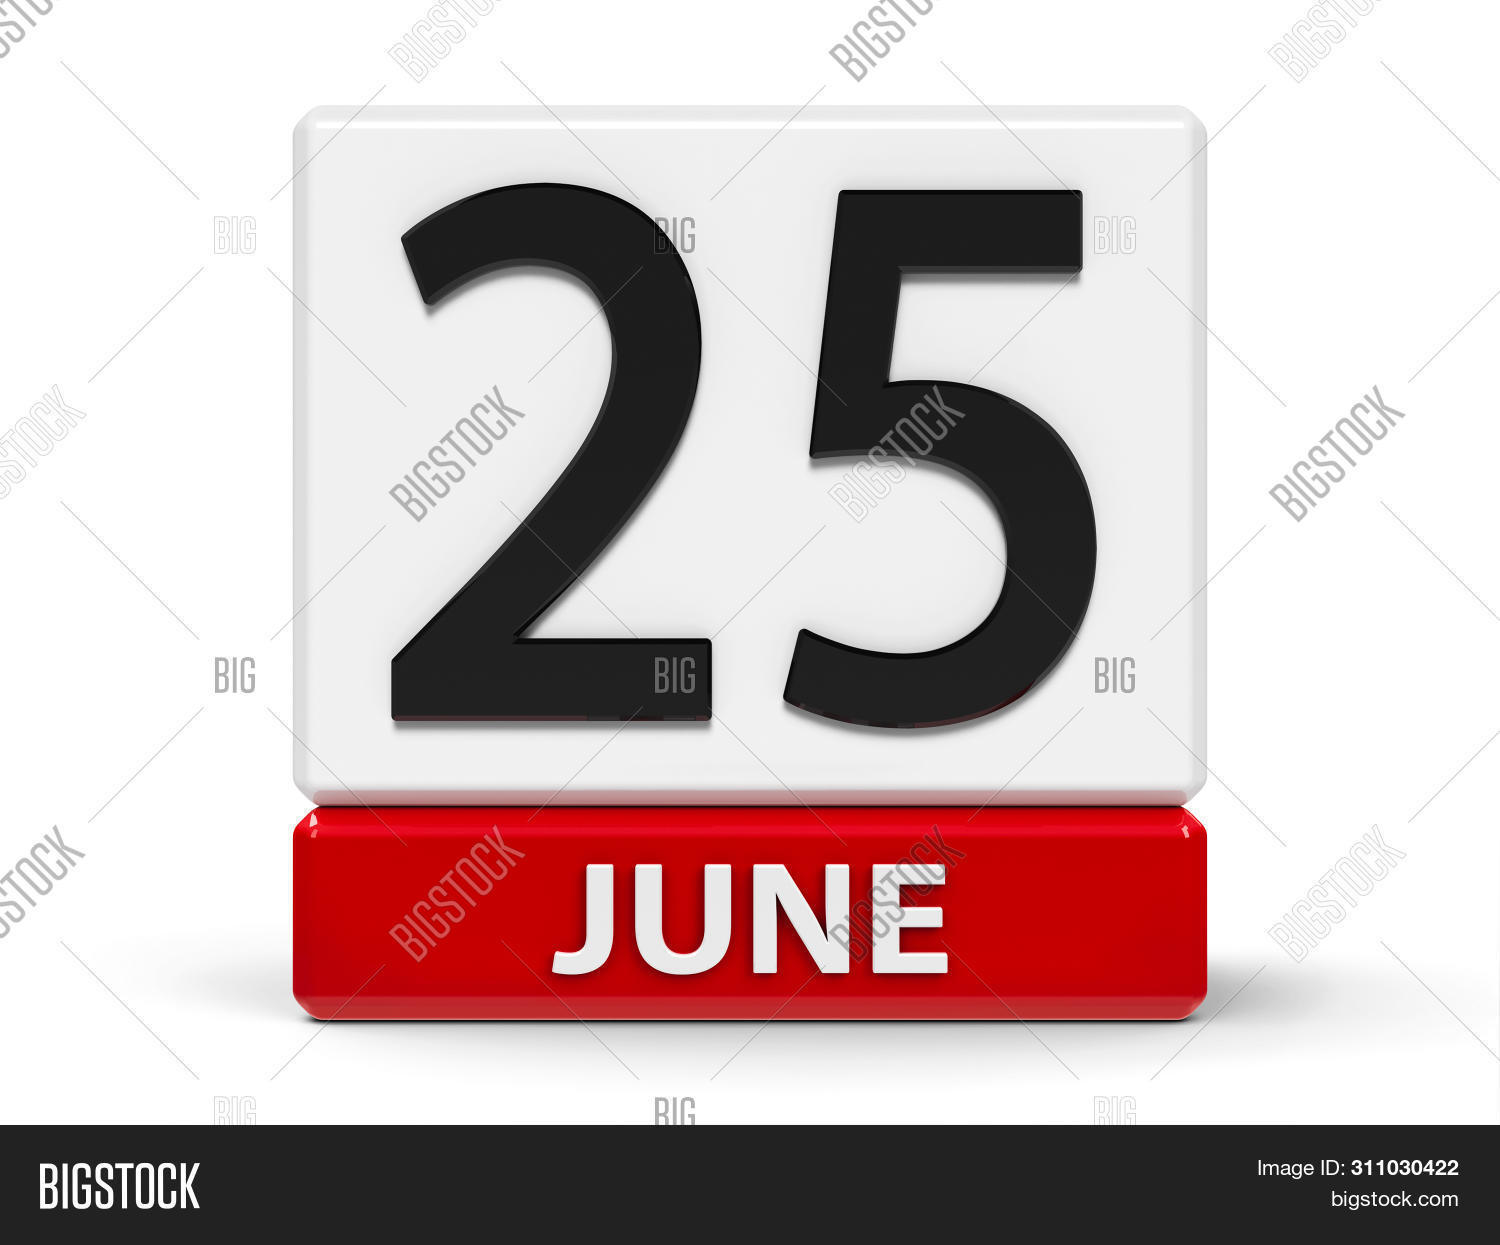 Red And White Calendar Icon From Cubes - The Twenty Fifth Of June - On A White Table - Day Of The Se